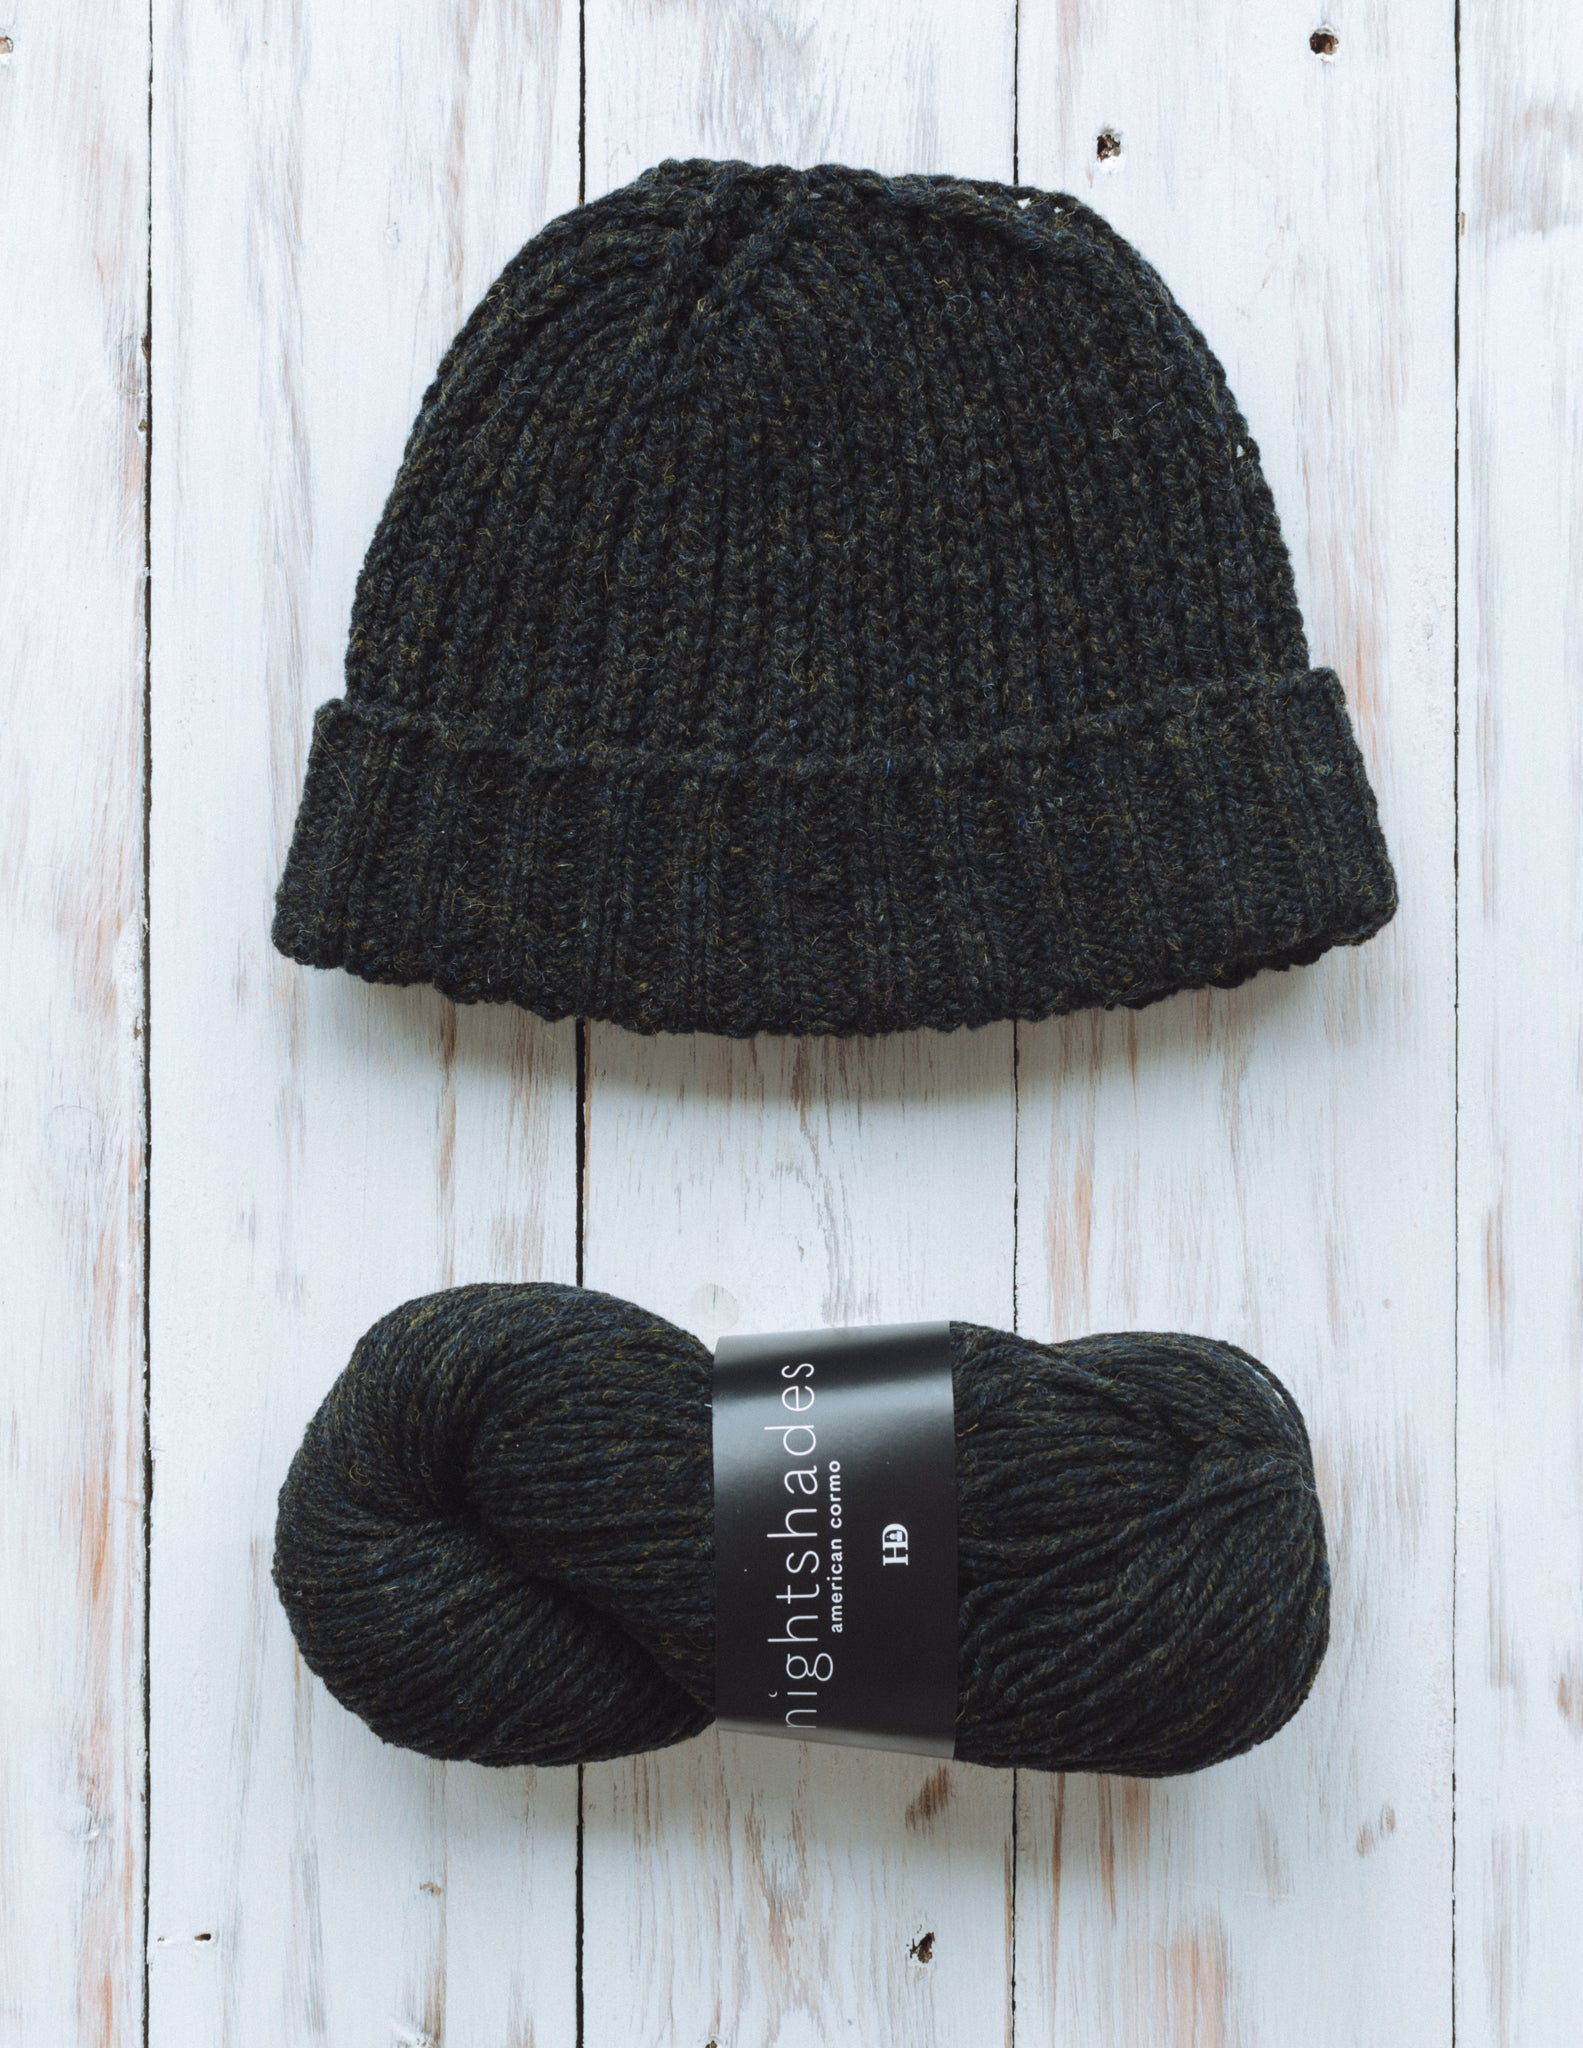 Daniel's Hat in large, shown in Harrisville Nightshades